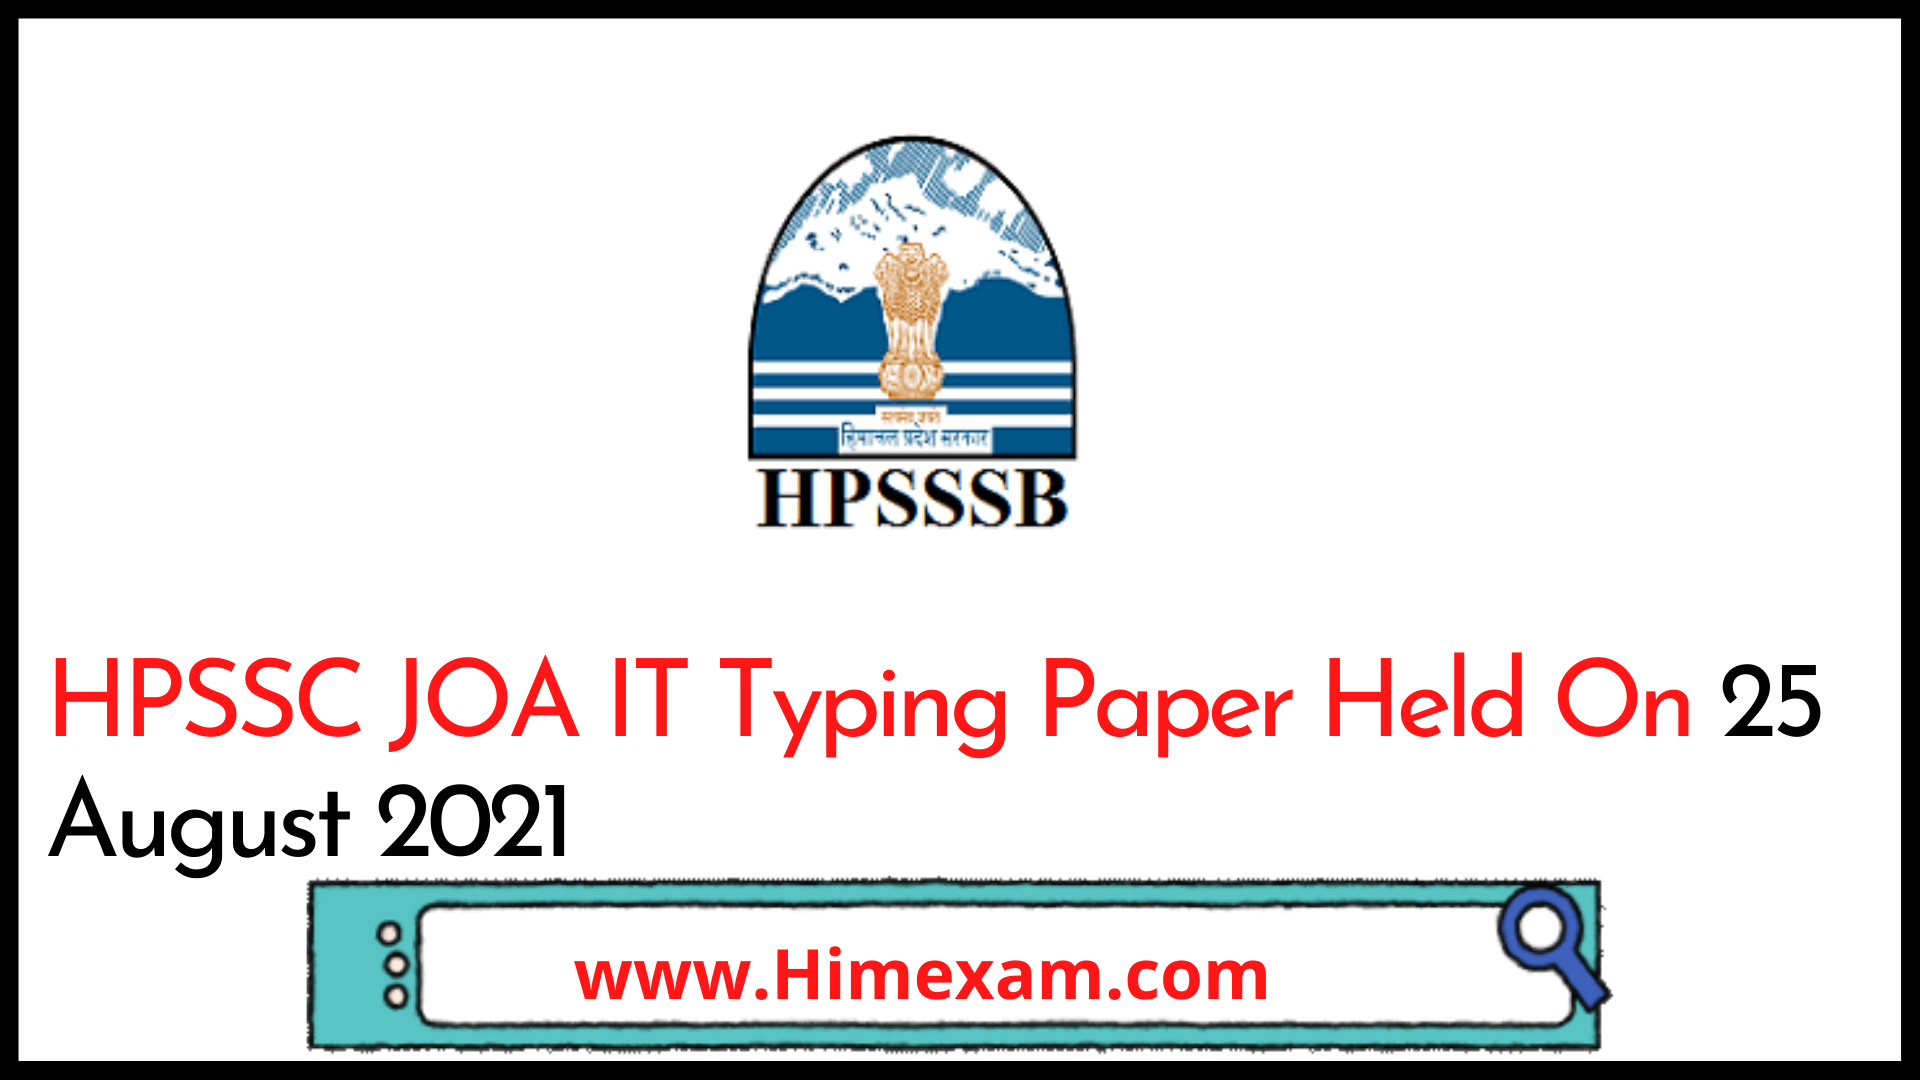 HPSSC JOA IT Typing Paper Held On 25 August 2021